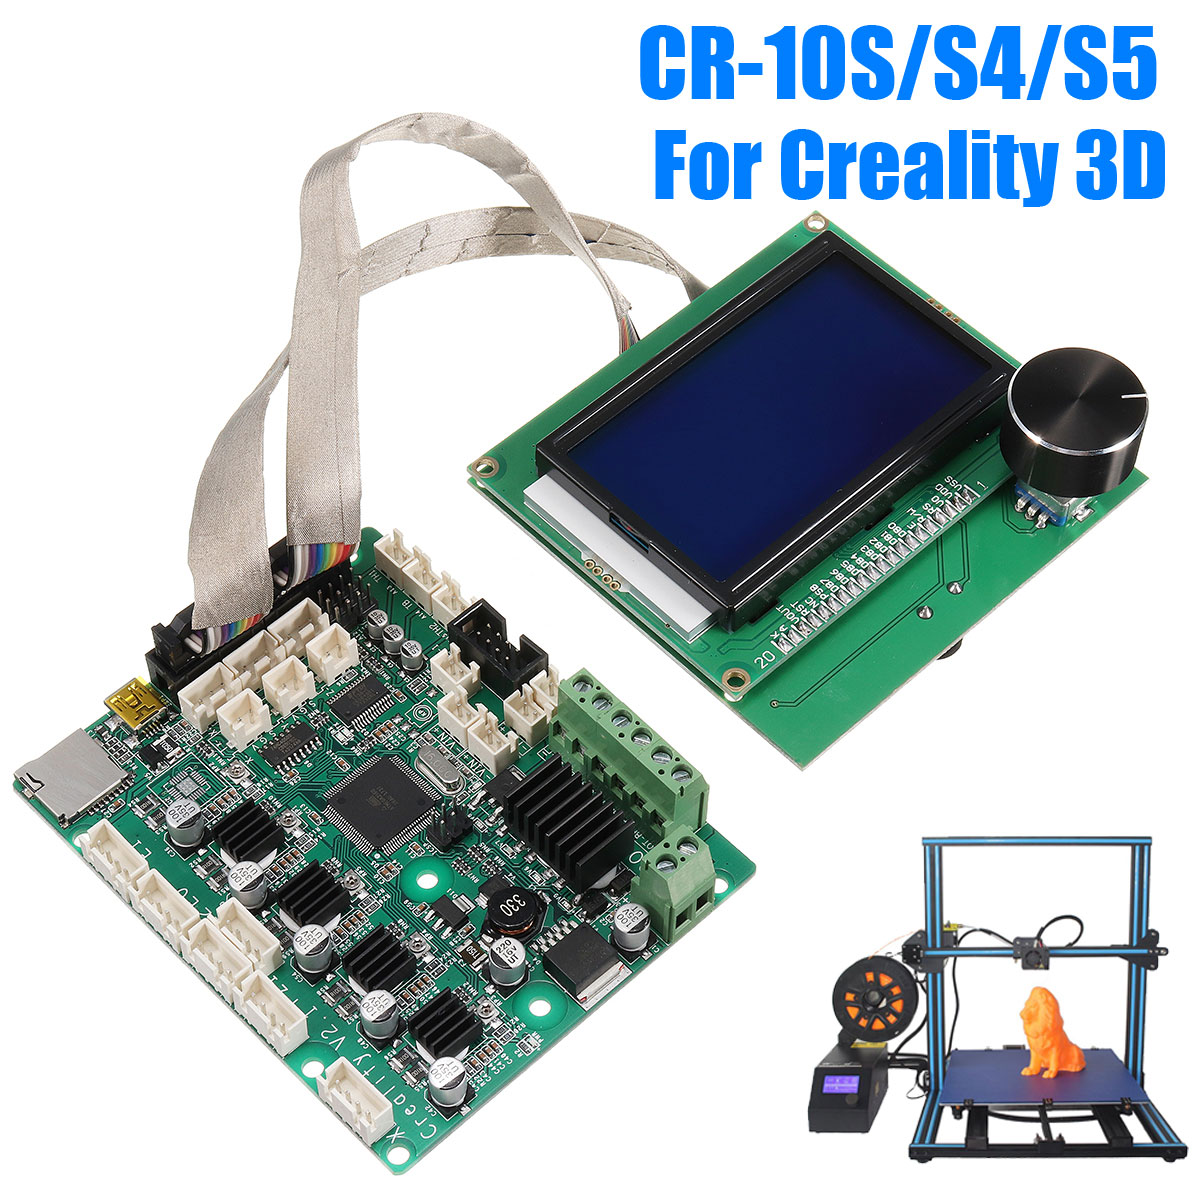 Creality 3D CR10 3D Printer Mainboard Control board With LCD Screen